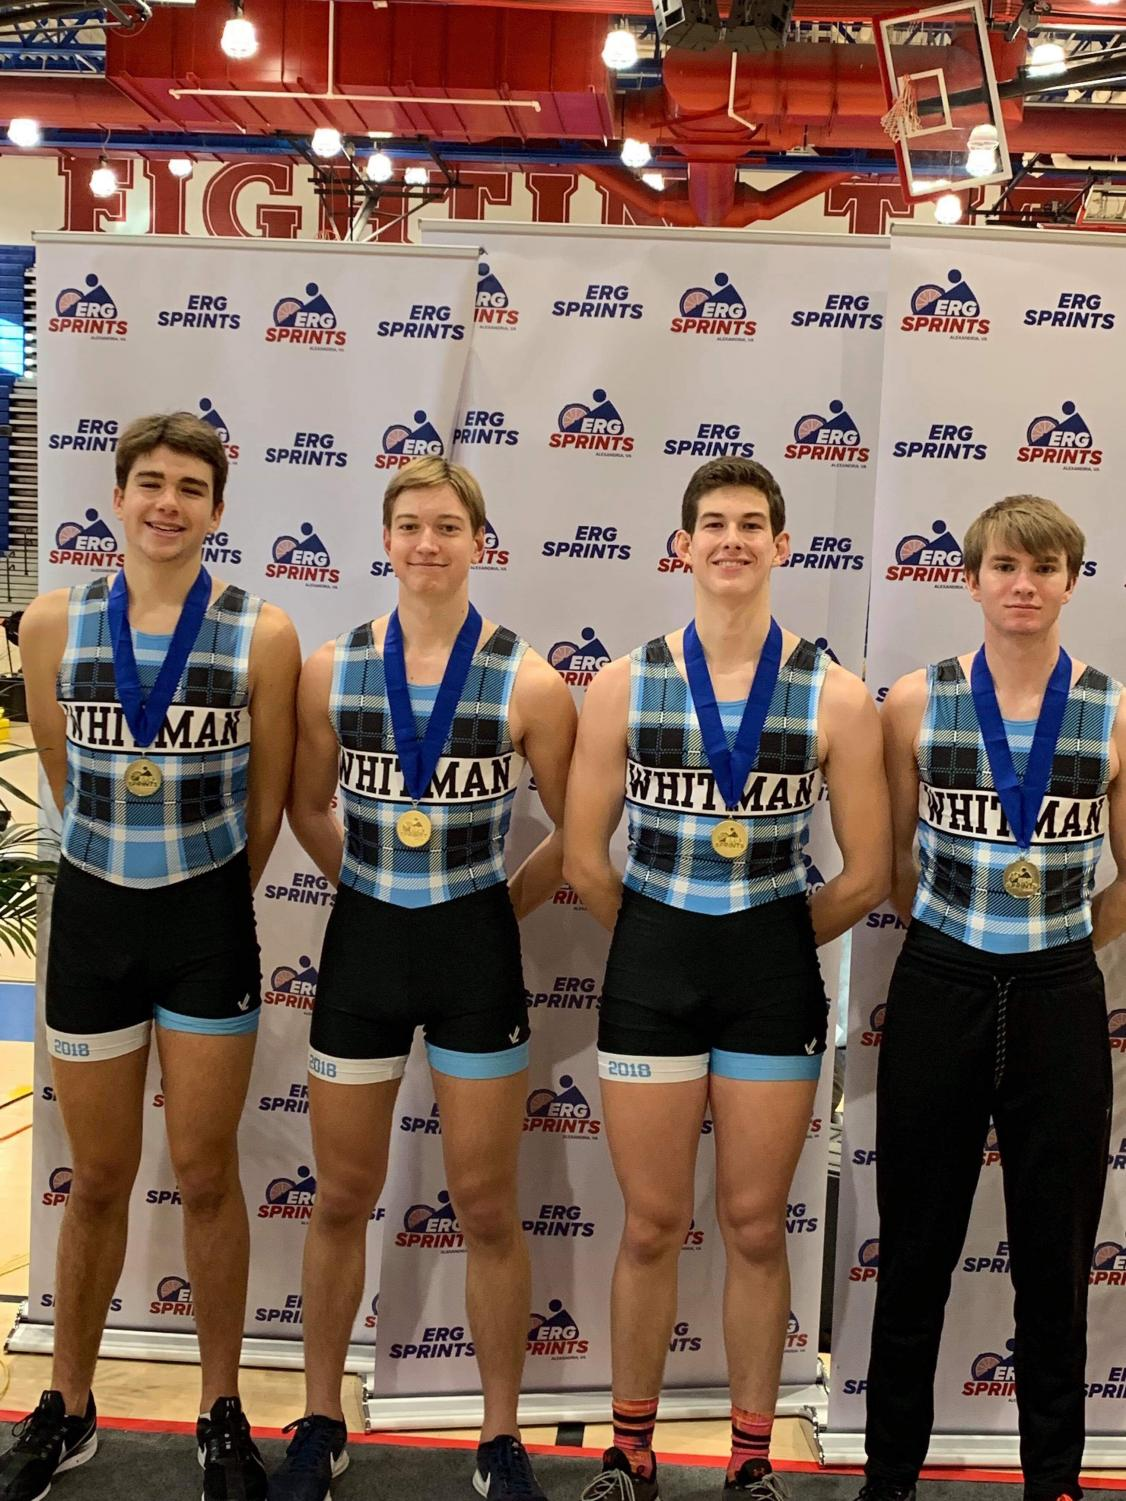 The quad slide team poses with their first place medals at the Erg Sprints competition. The team competes indoors in the winter while the river is frozen.